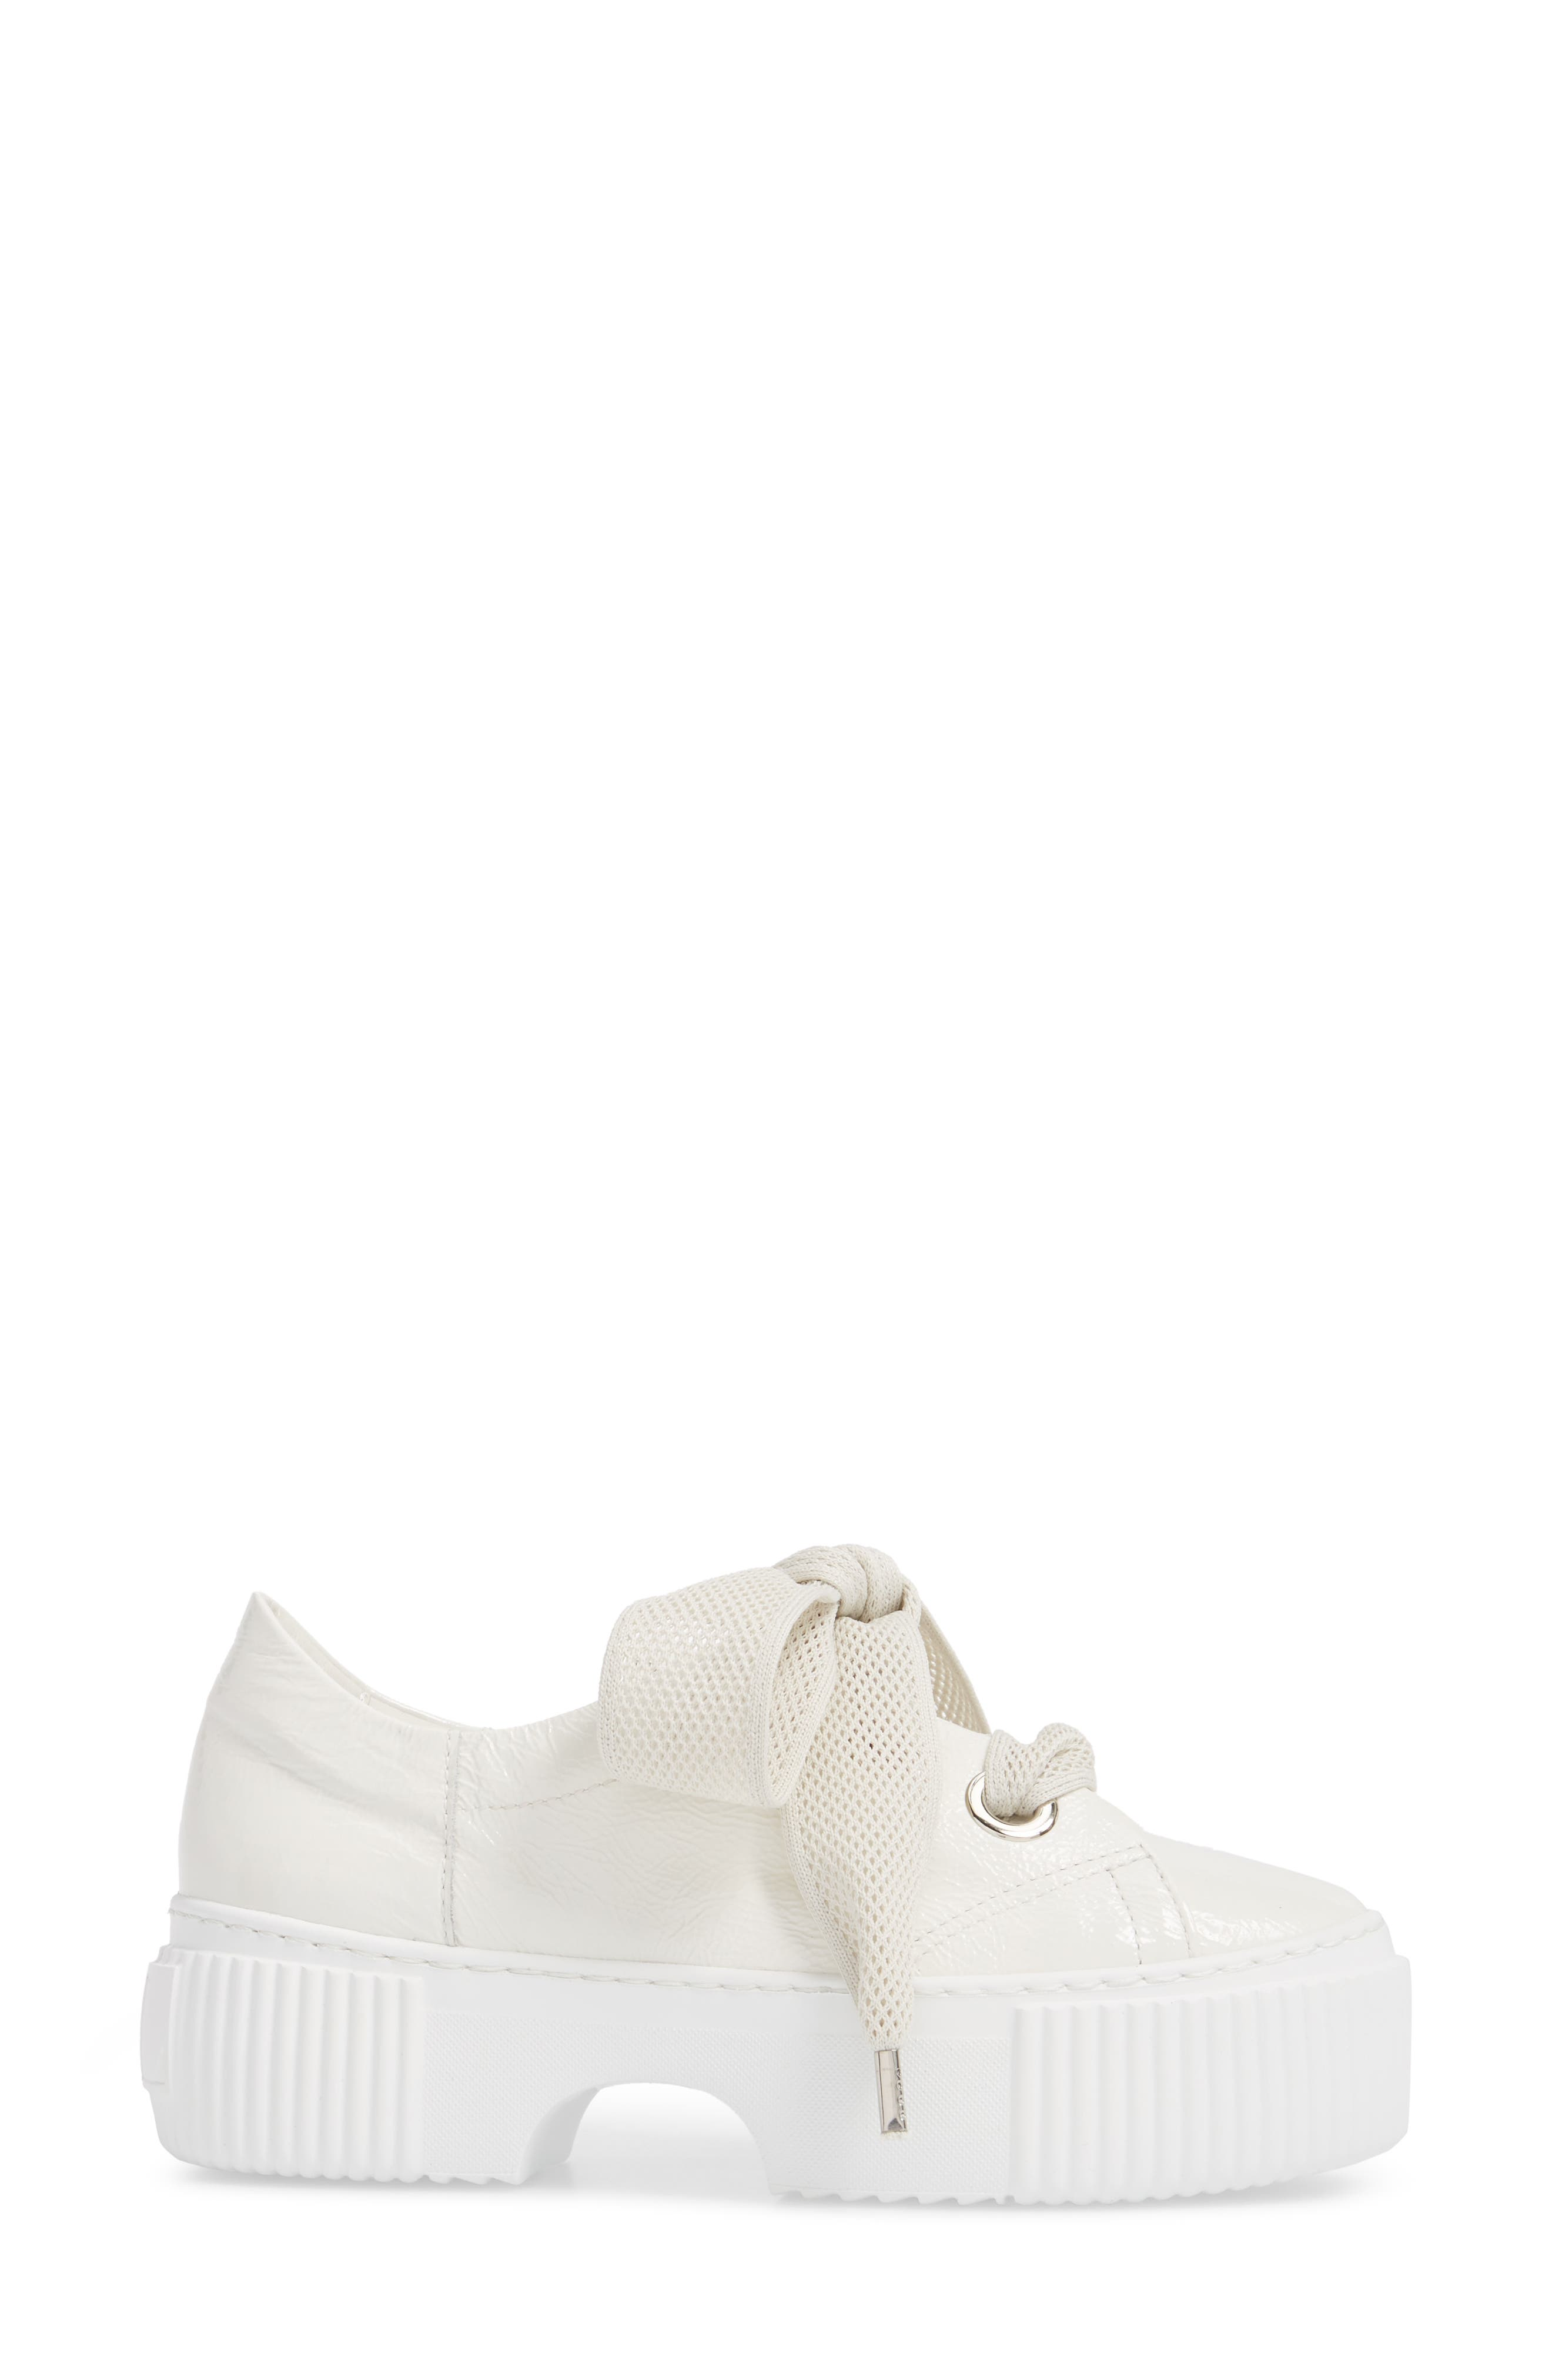 Platform Sneaker,                             Alternate thumbnail 3, color,                             WHITE GLAMMY LEATHER